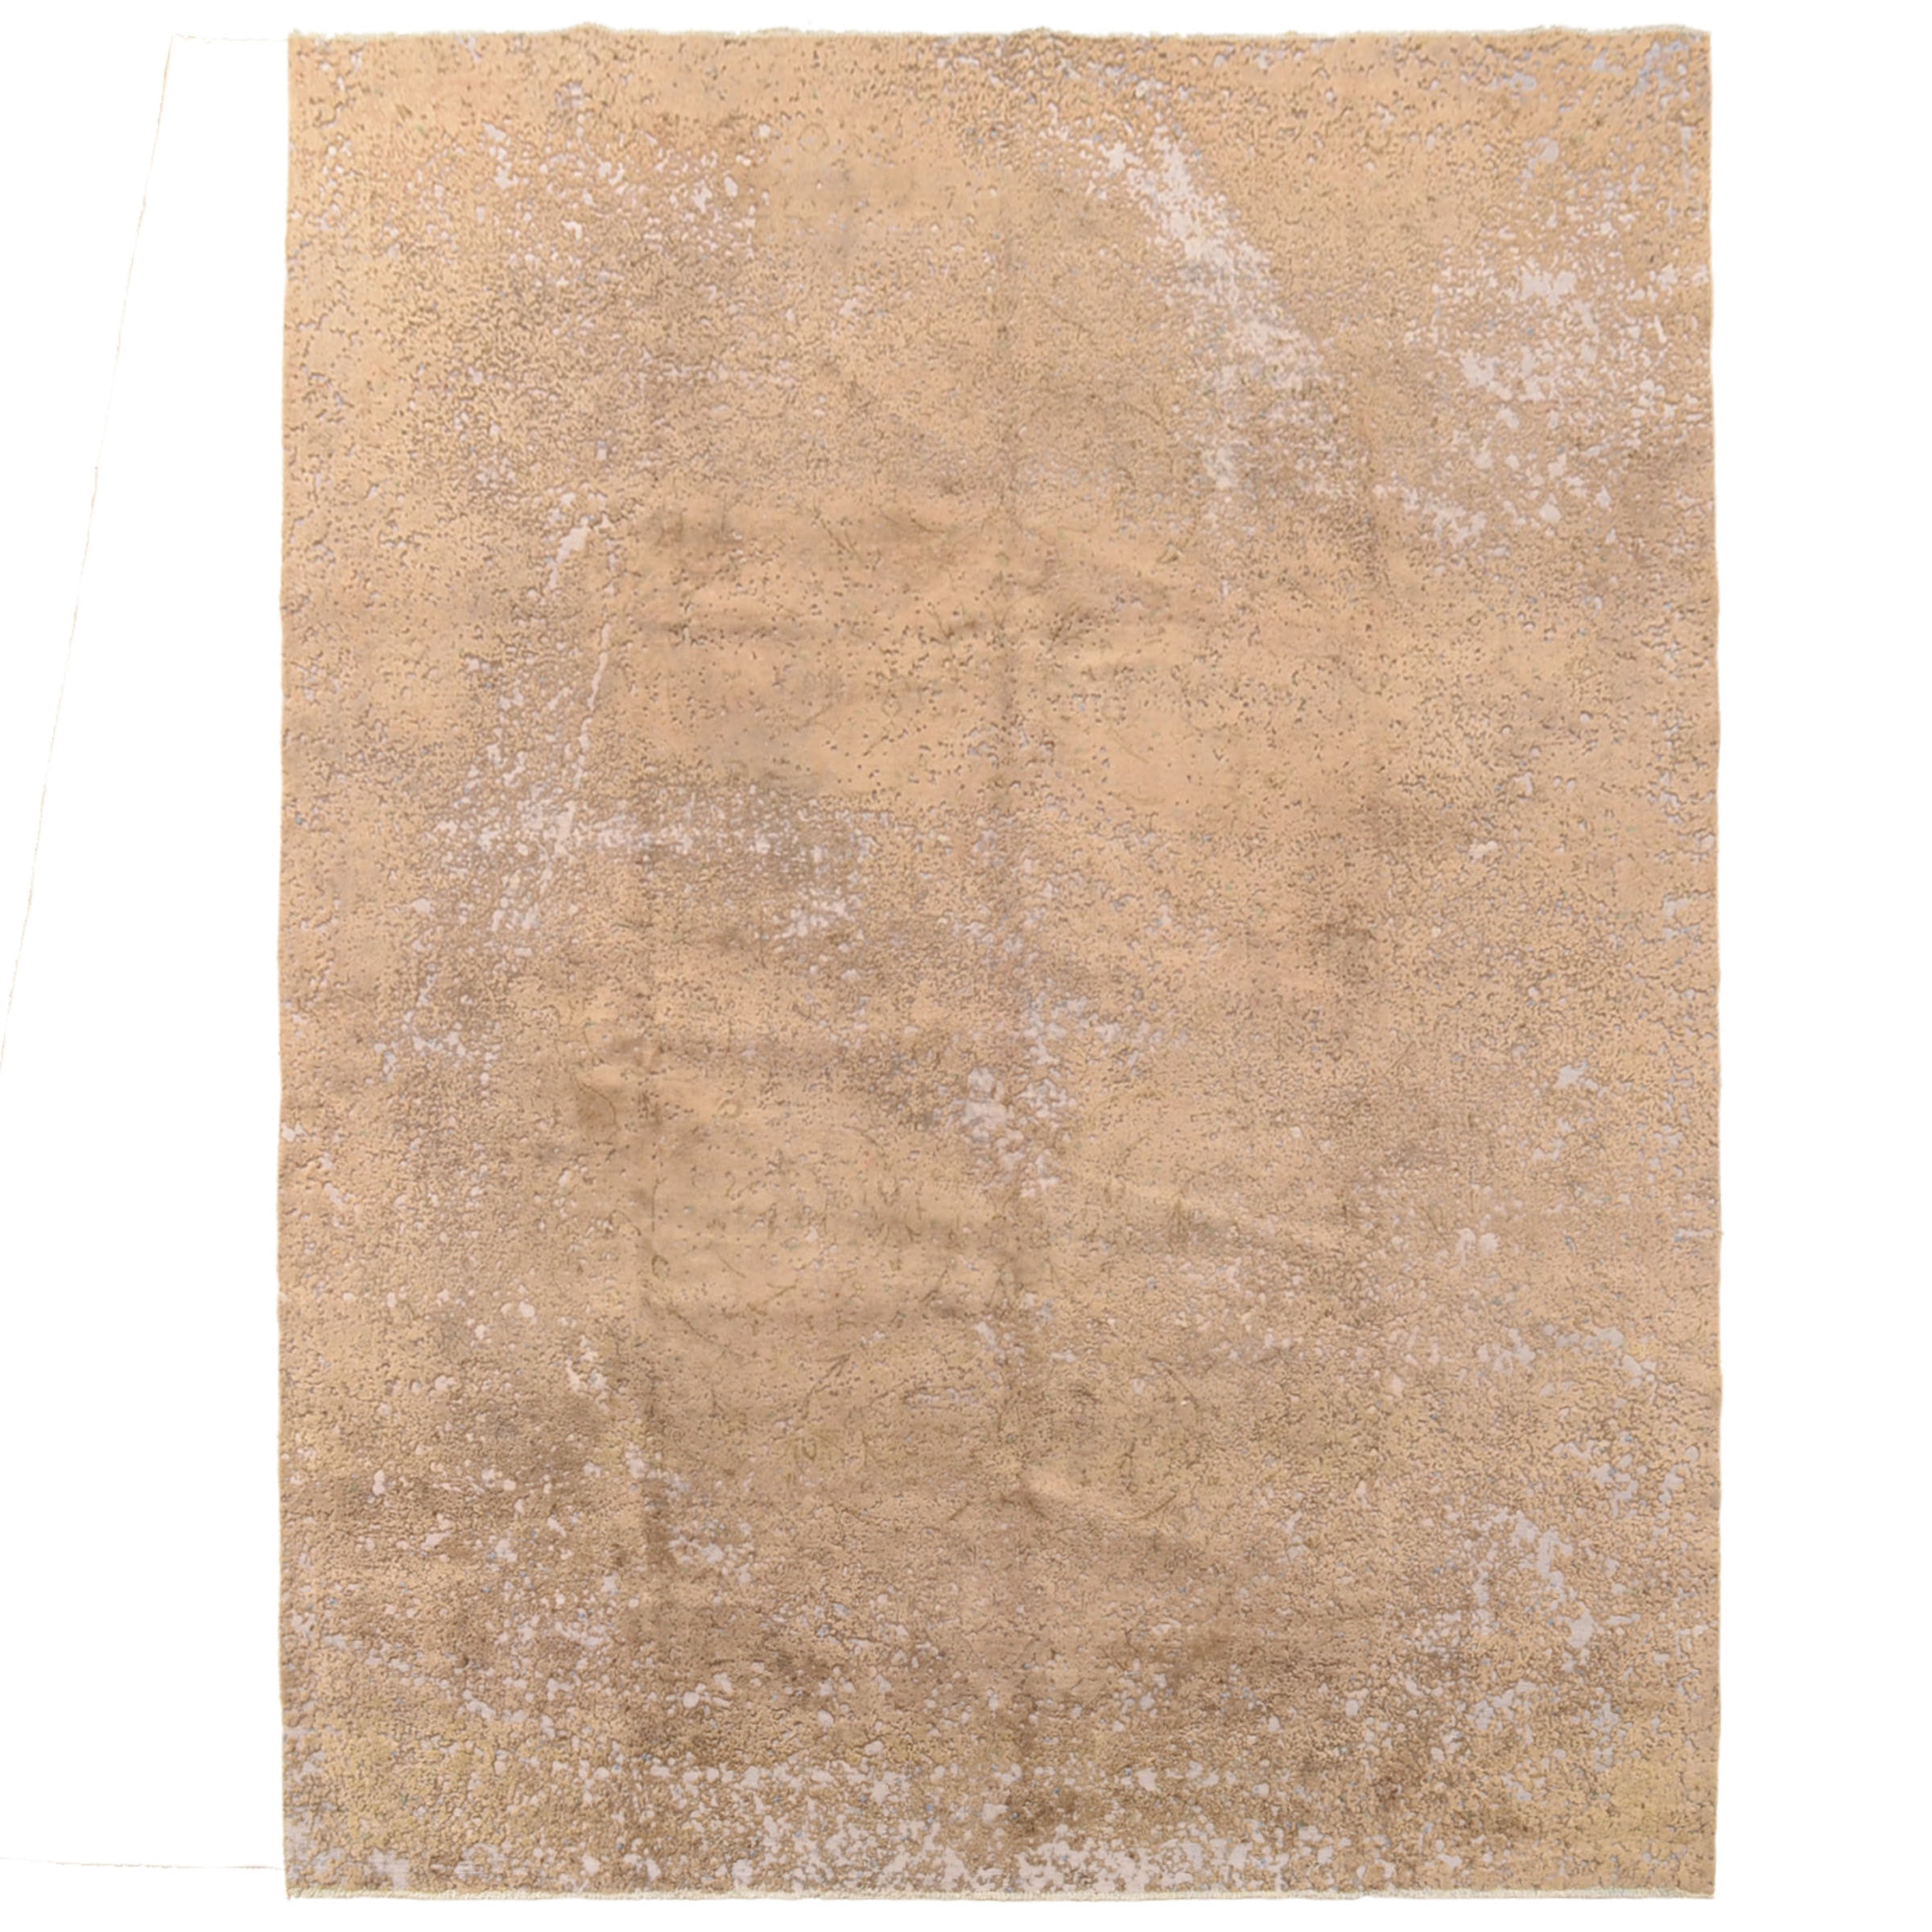 Hand-Knotted Intentionally Distressed Oushak-Style Area Rug